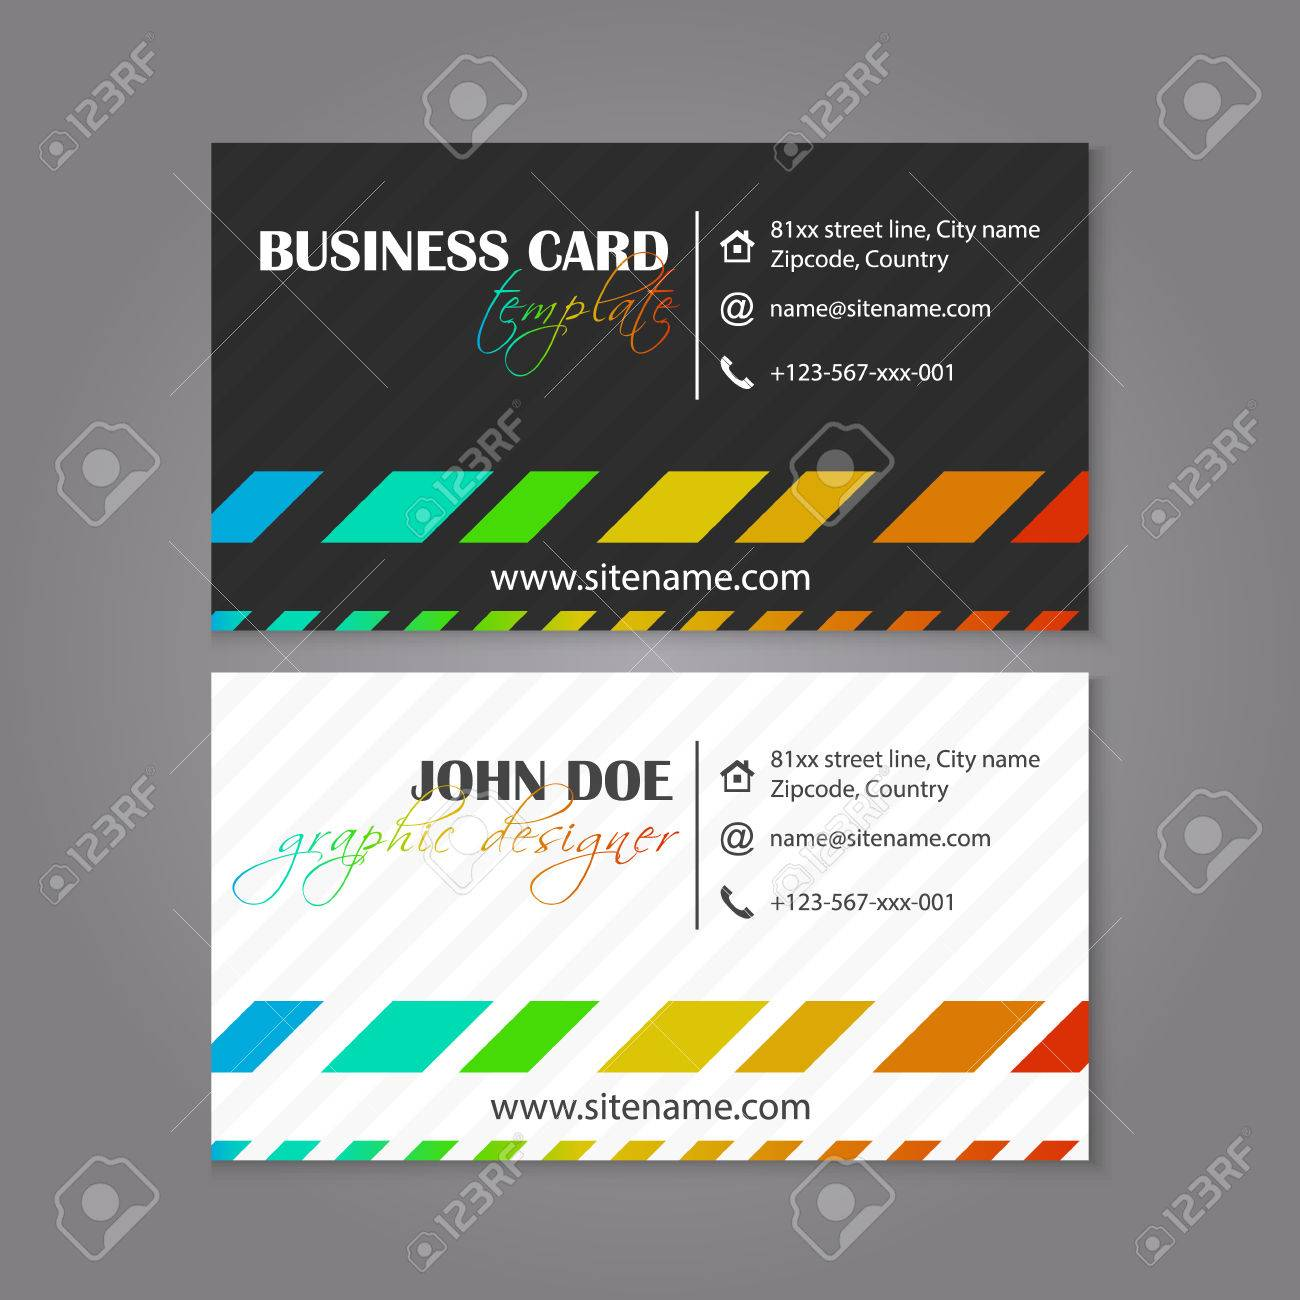 Business card template coloruful design for individual or business business card template coloruful design for individual or business presenation vector illustration stock vector friedricerecipe Gallery